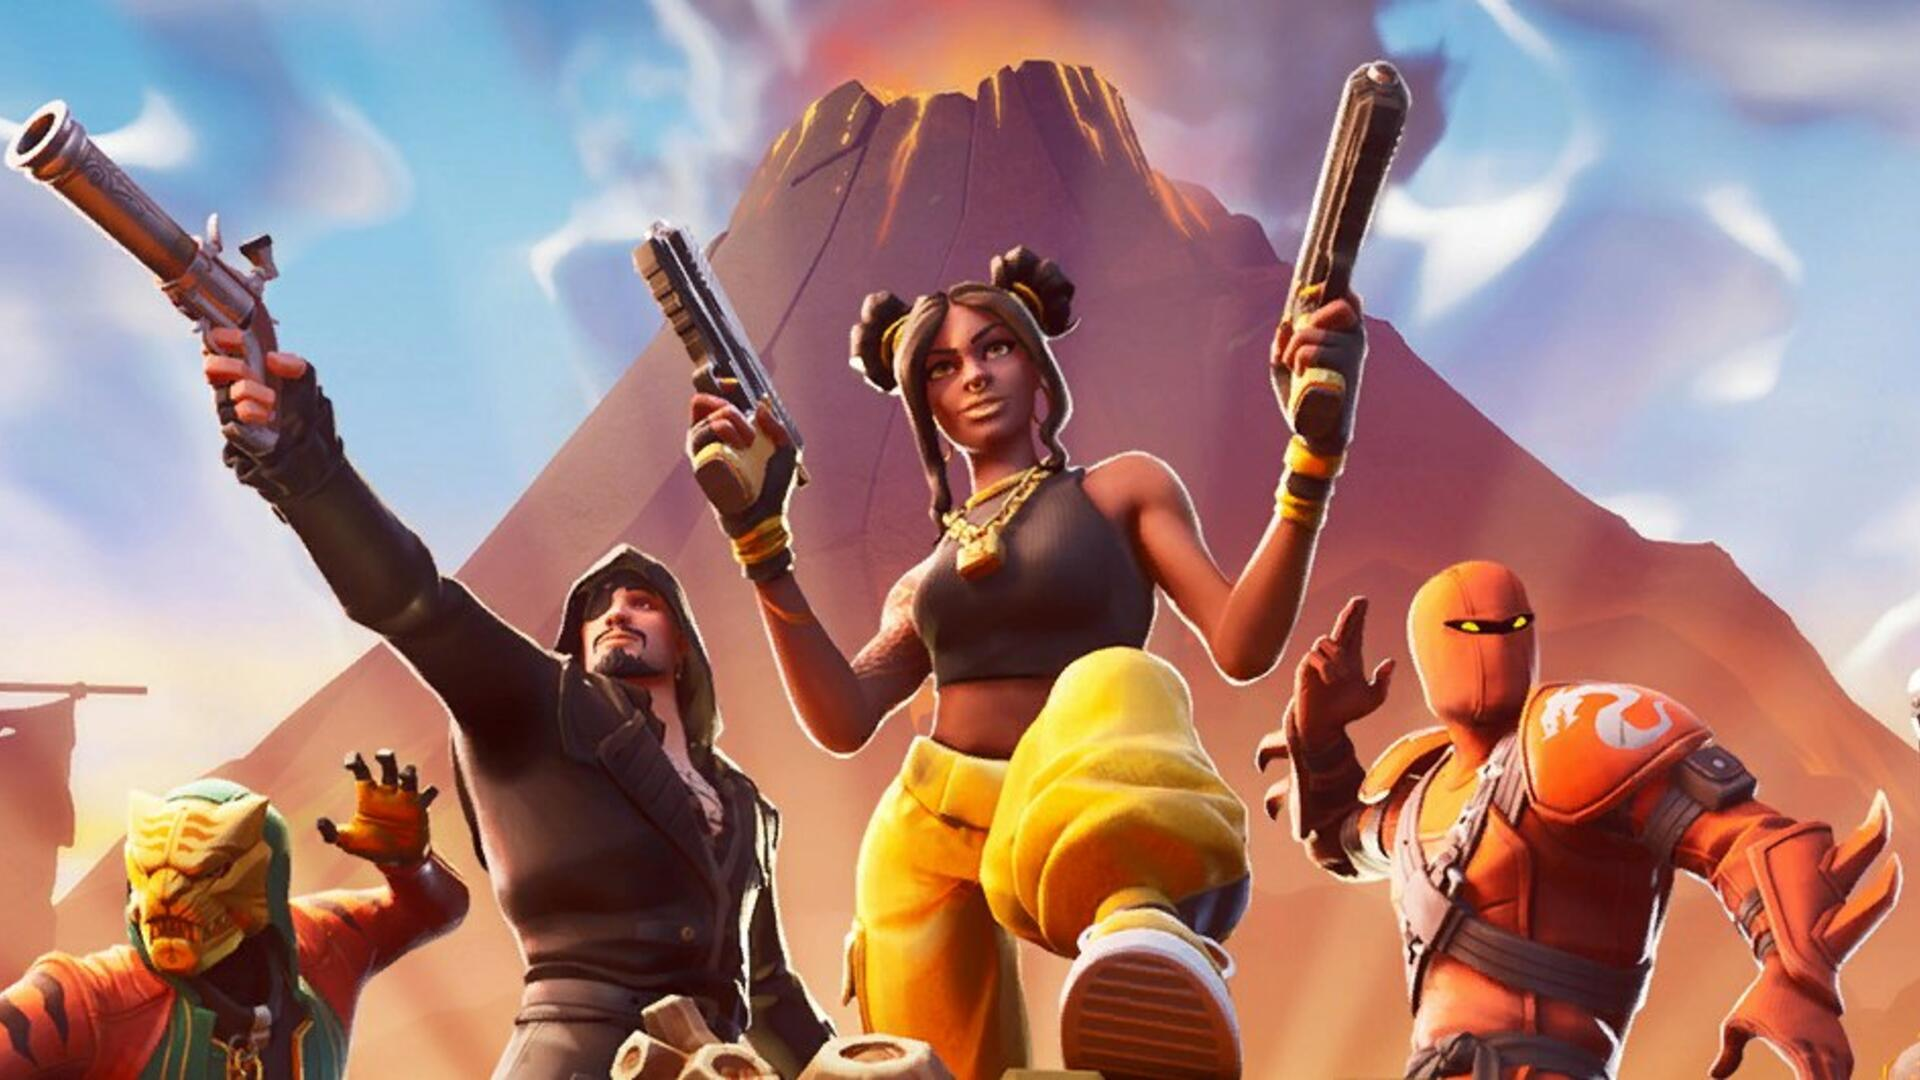 Fortnite Season 8 Skins New Fortnite Season 8 Battle Pass Skins